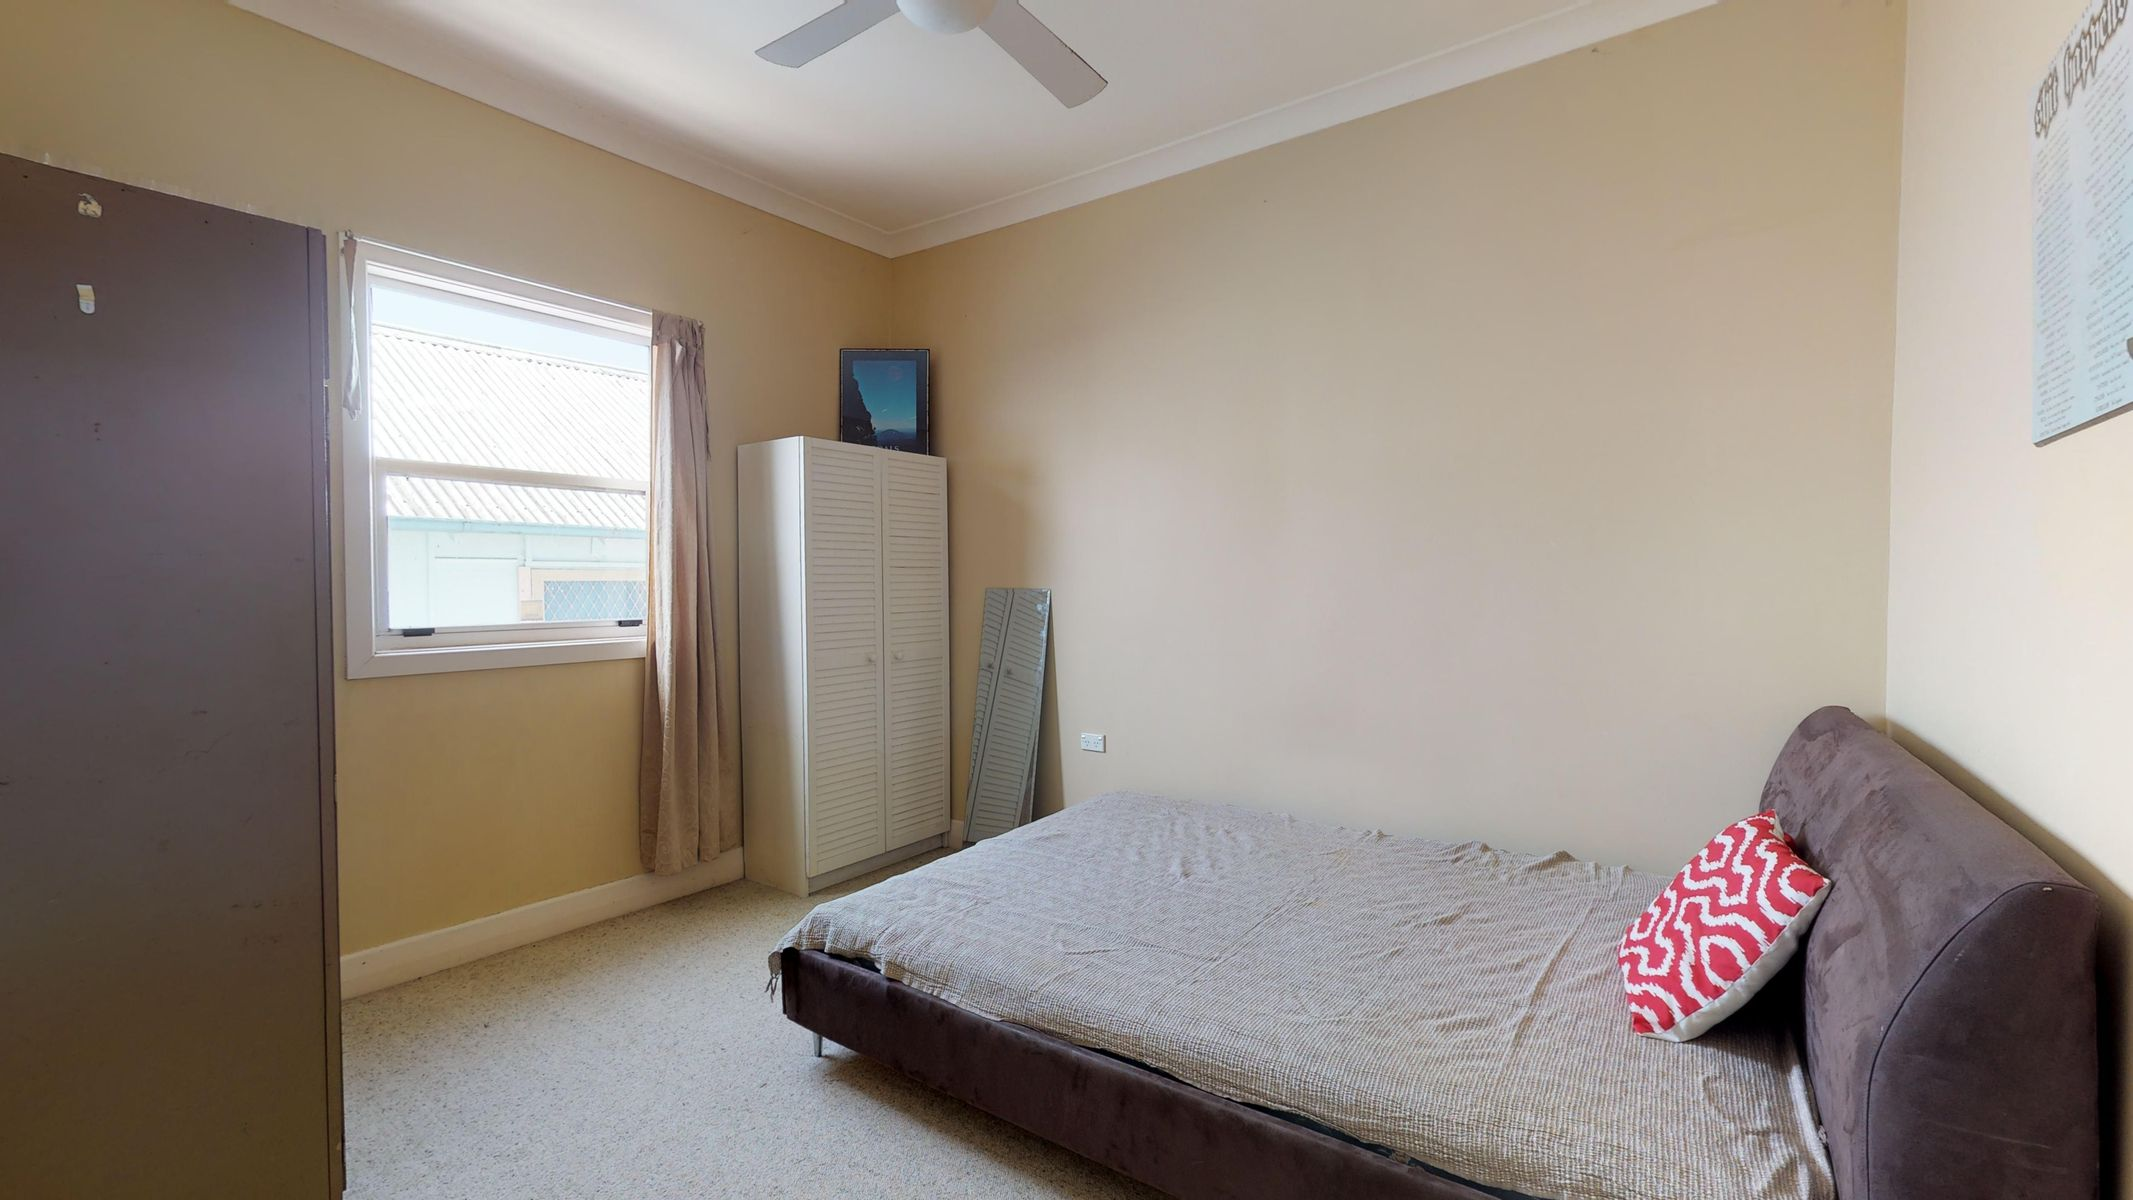 Room 5/206 Marsden Street, Shortland, NSW 2307